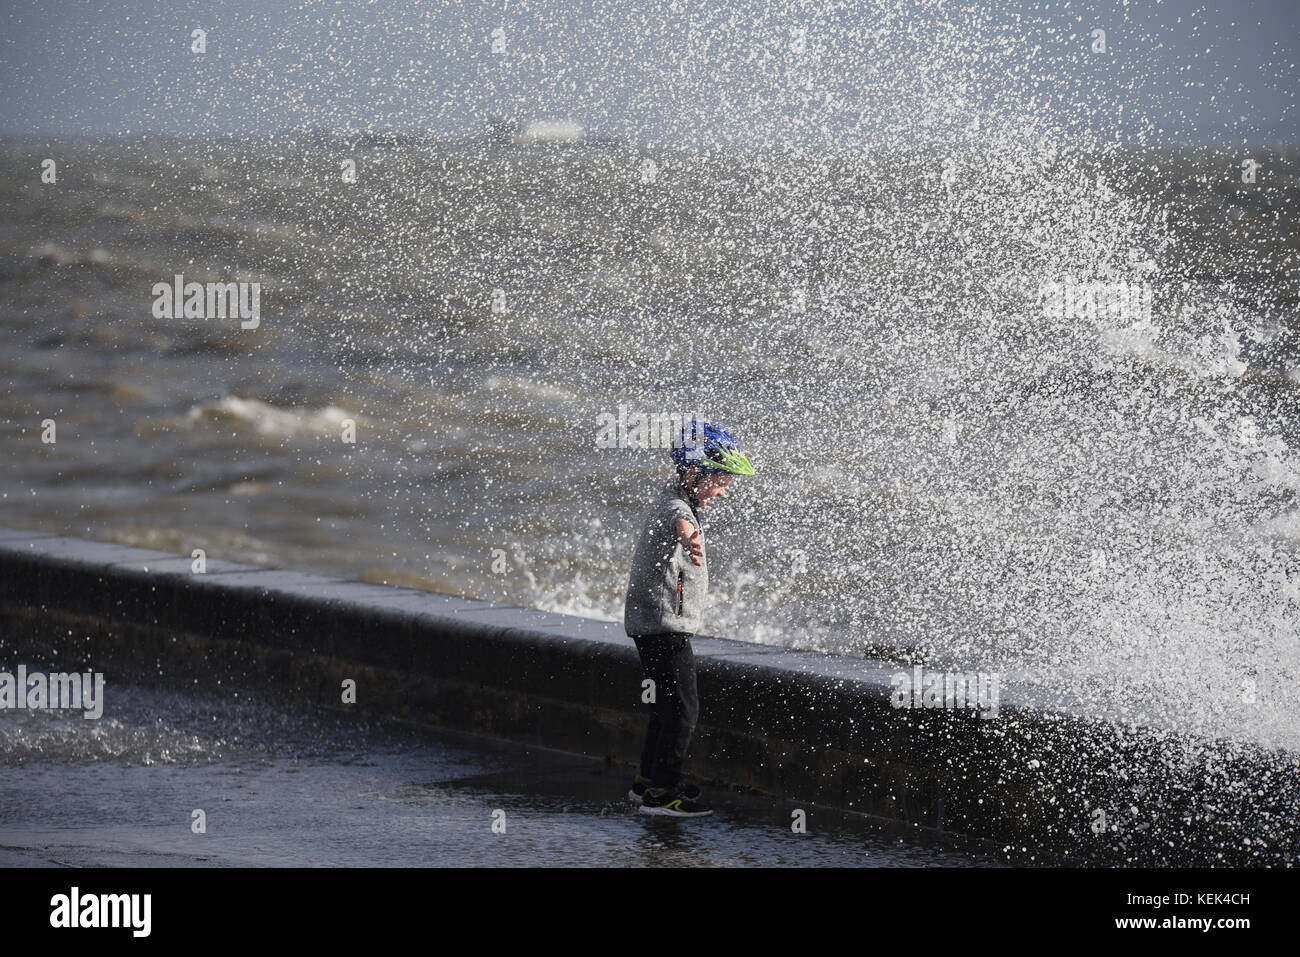 storm-brian-hit-southend-seafront-at-spring-tide-causing-waves-to-KEK4CH.jpg